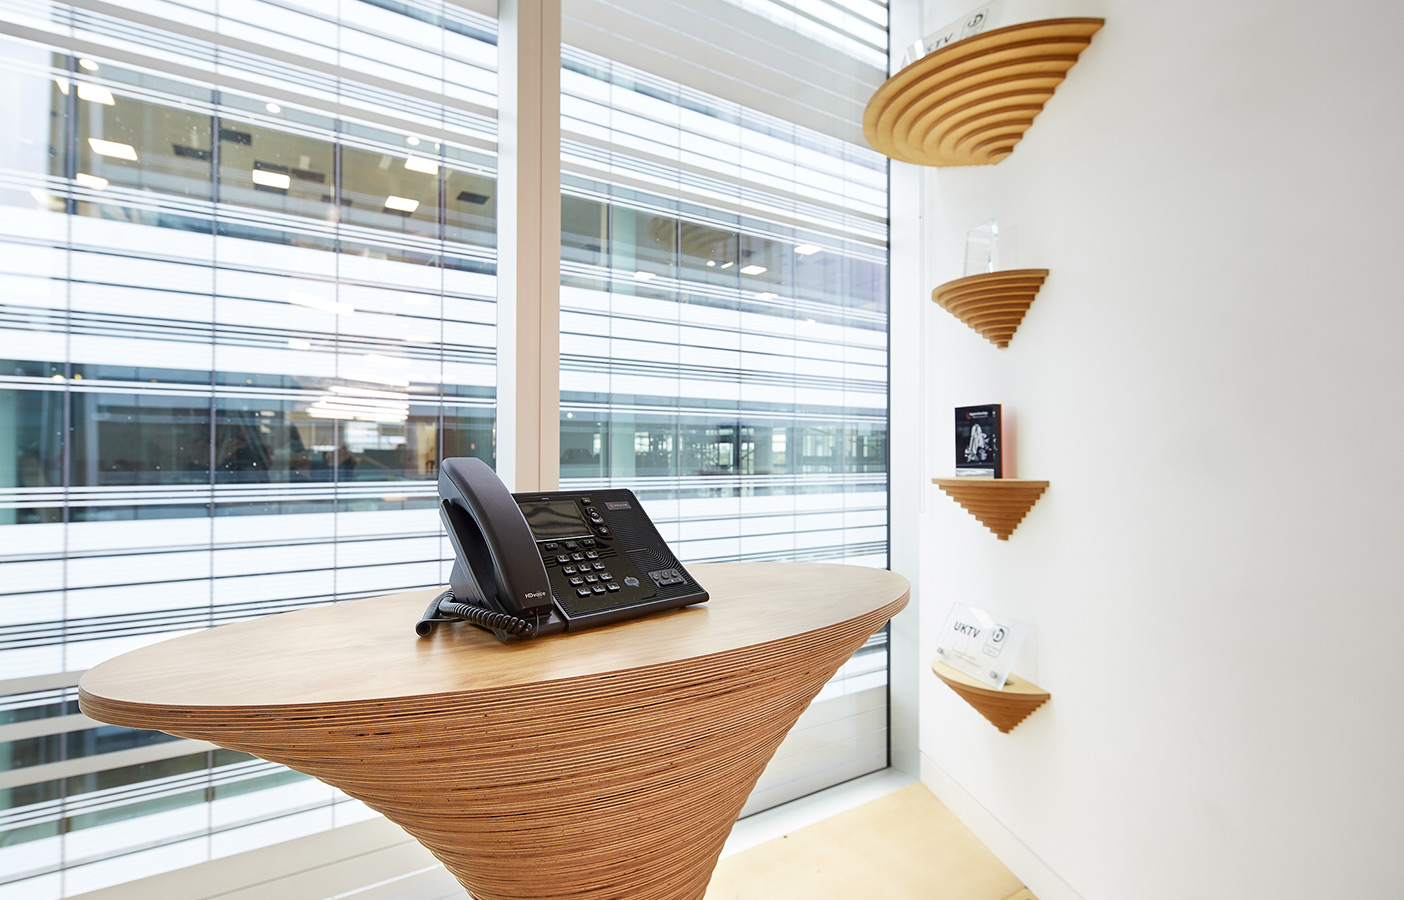 Aldworth James & Bond | UKTV Office Additions | Phone stand and shelving